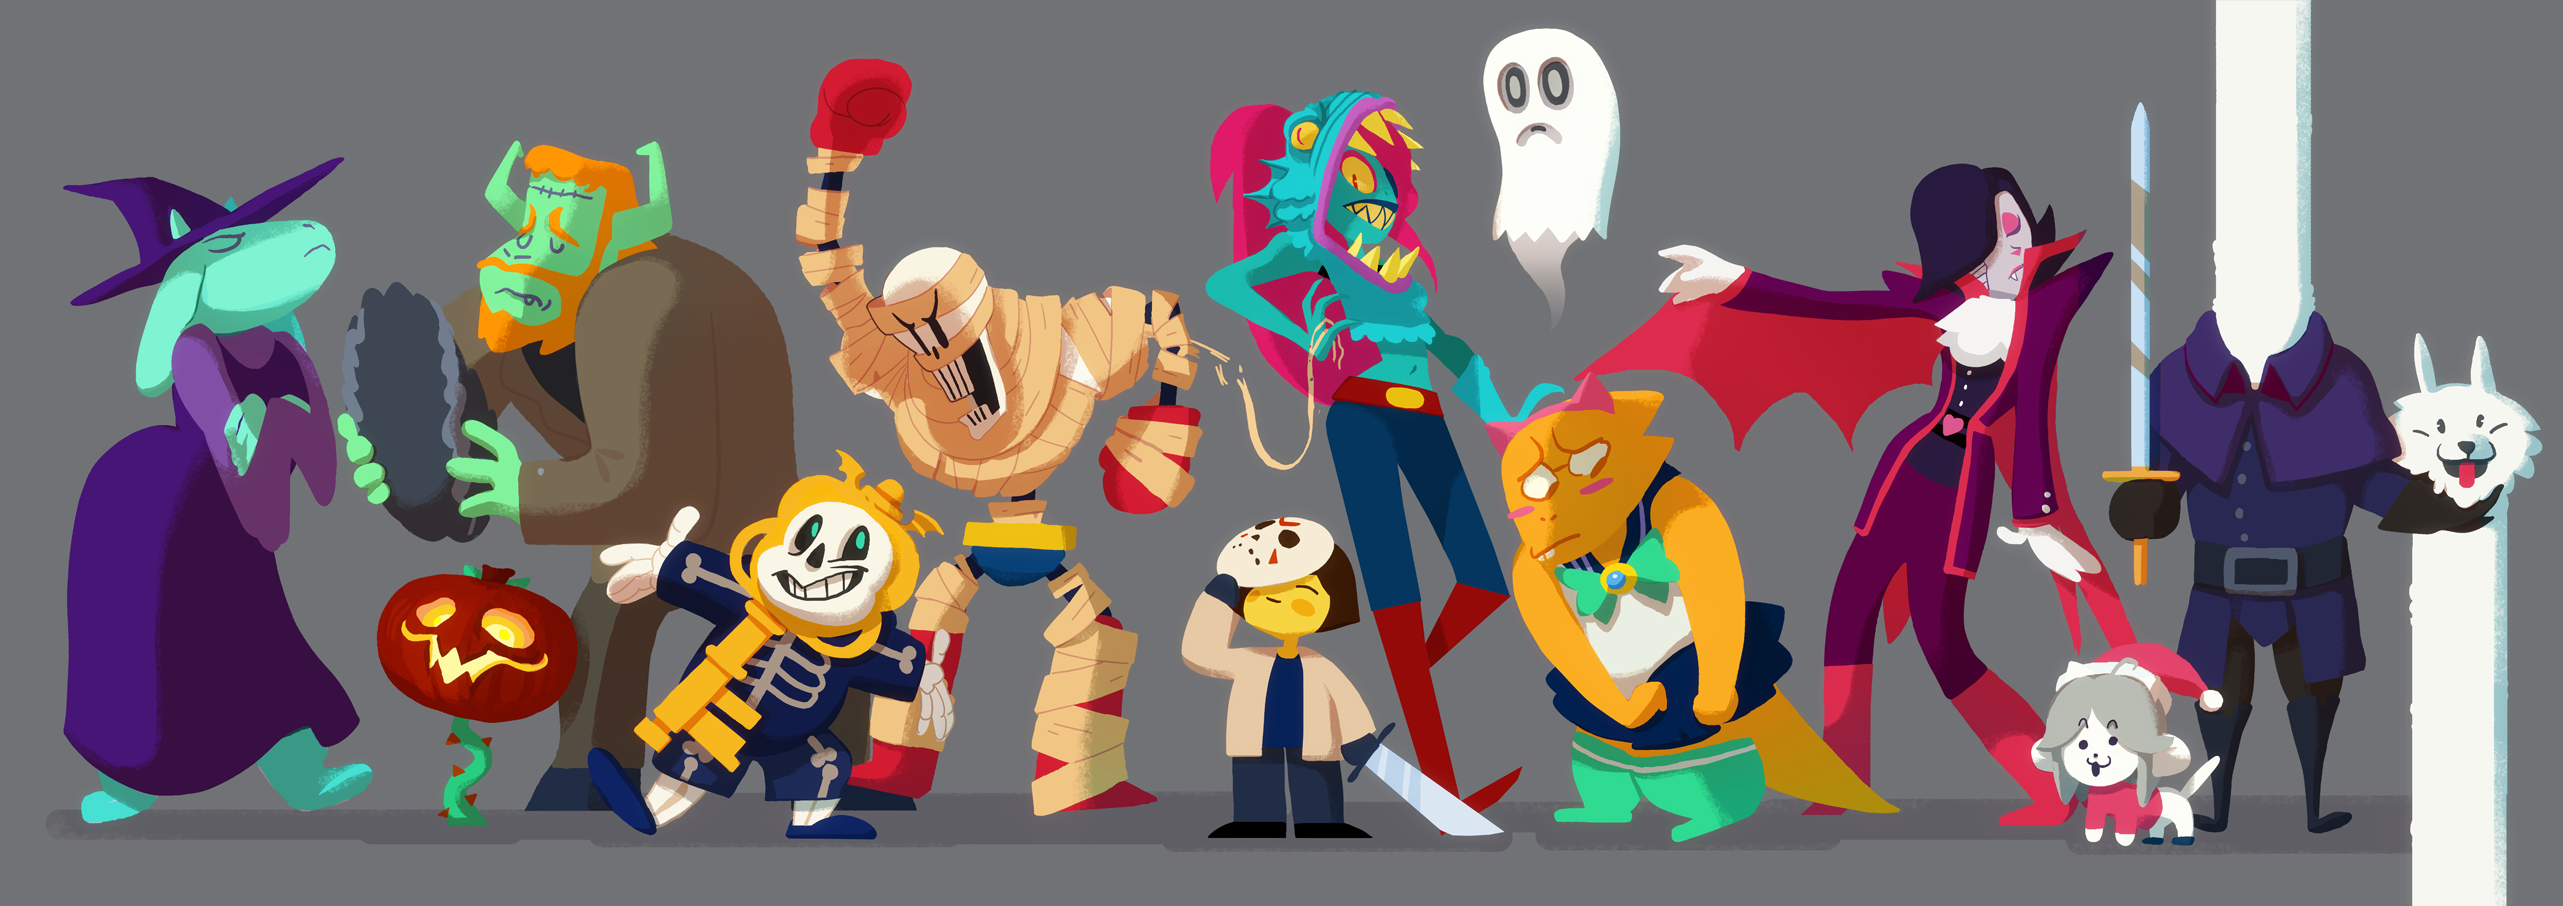 Undertale Halloween by Art Calavera 2563x906